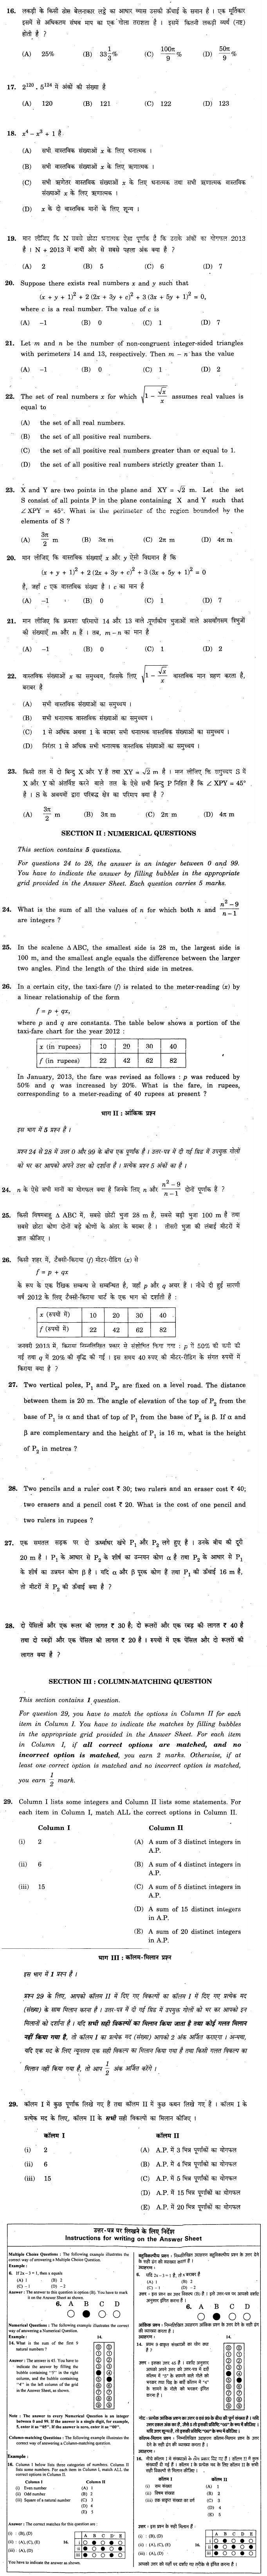 CBSE Proficiency Test 2013 Question Papers - Mathematics